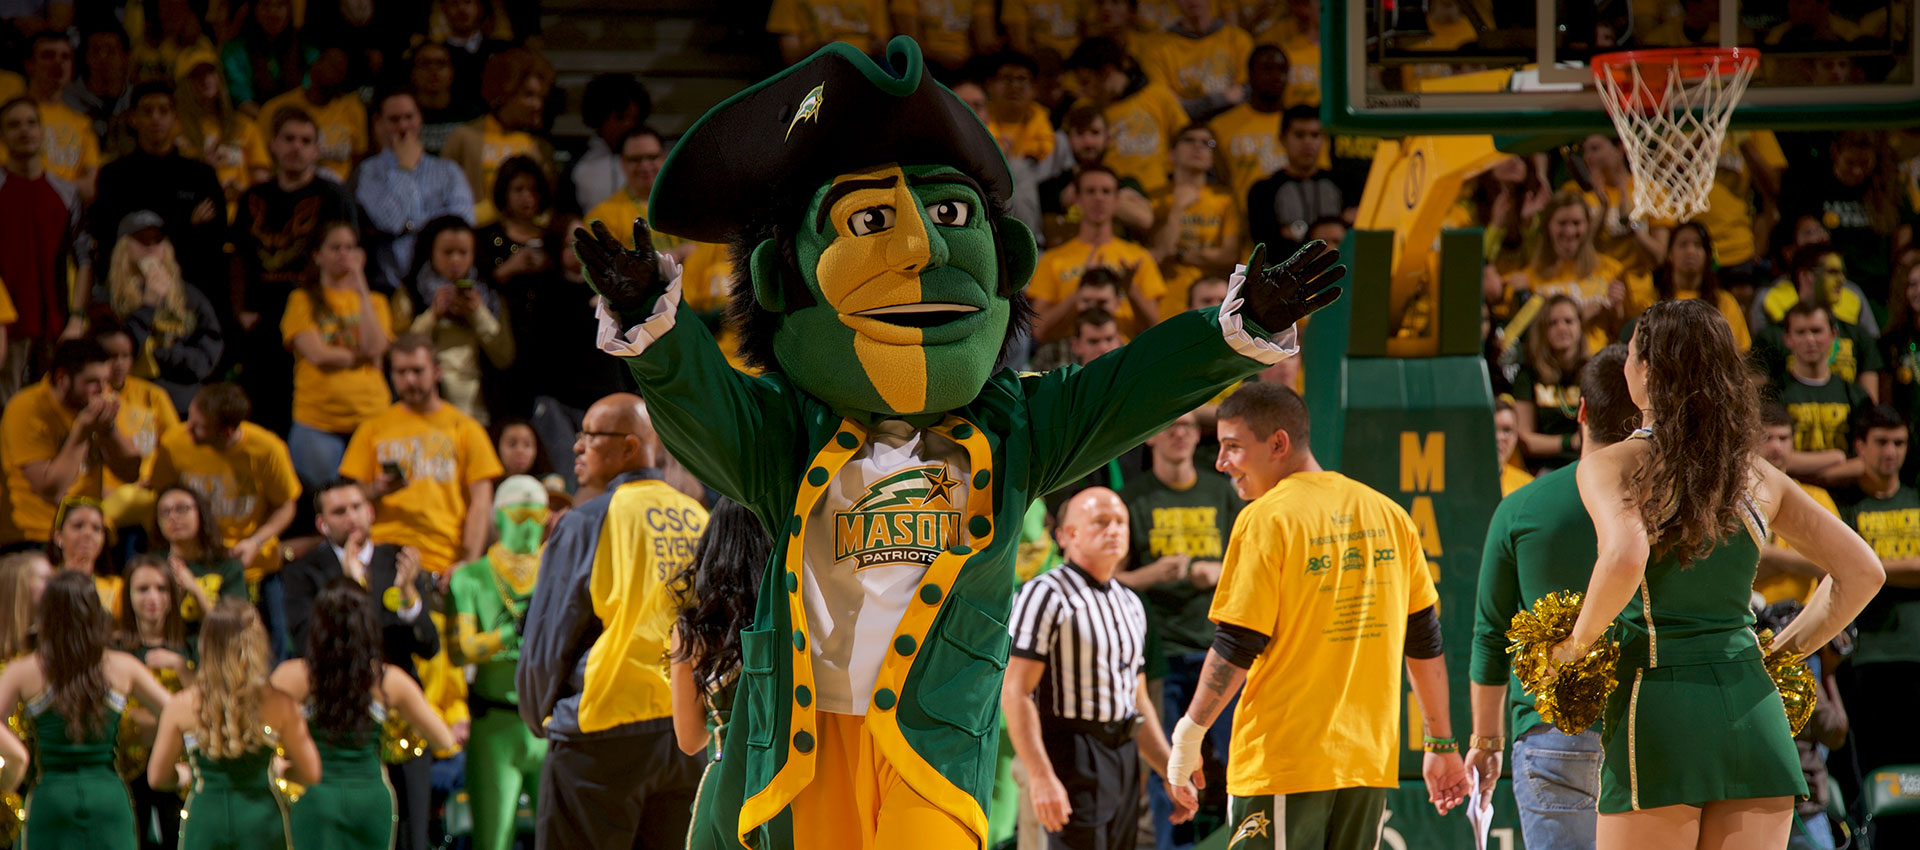 George Mason fans mascot on homepage